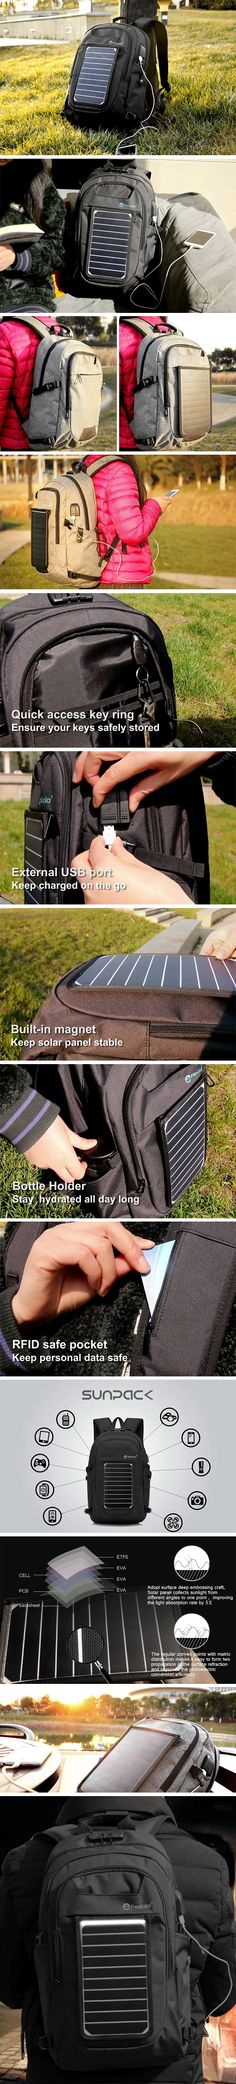 The Flextech SunPack backpack, is the most useful in their series of products. Giving you storage for your devices as well as the means to charge them. If you hate electricity bills or having to look for plug-points, and you love backpacks, the SunPack may just be the best backpack for you. With Flextech's powerful, weatherproof solar panel integrated into it, just being outdoors is enough to generate electricity! BUY NOW!